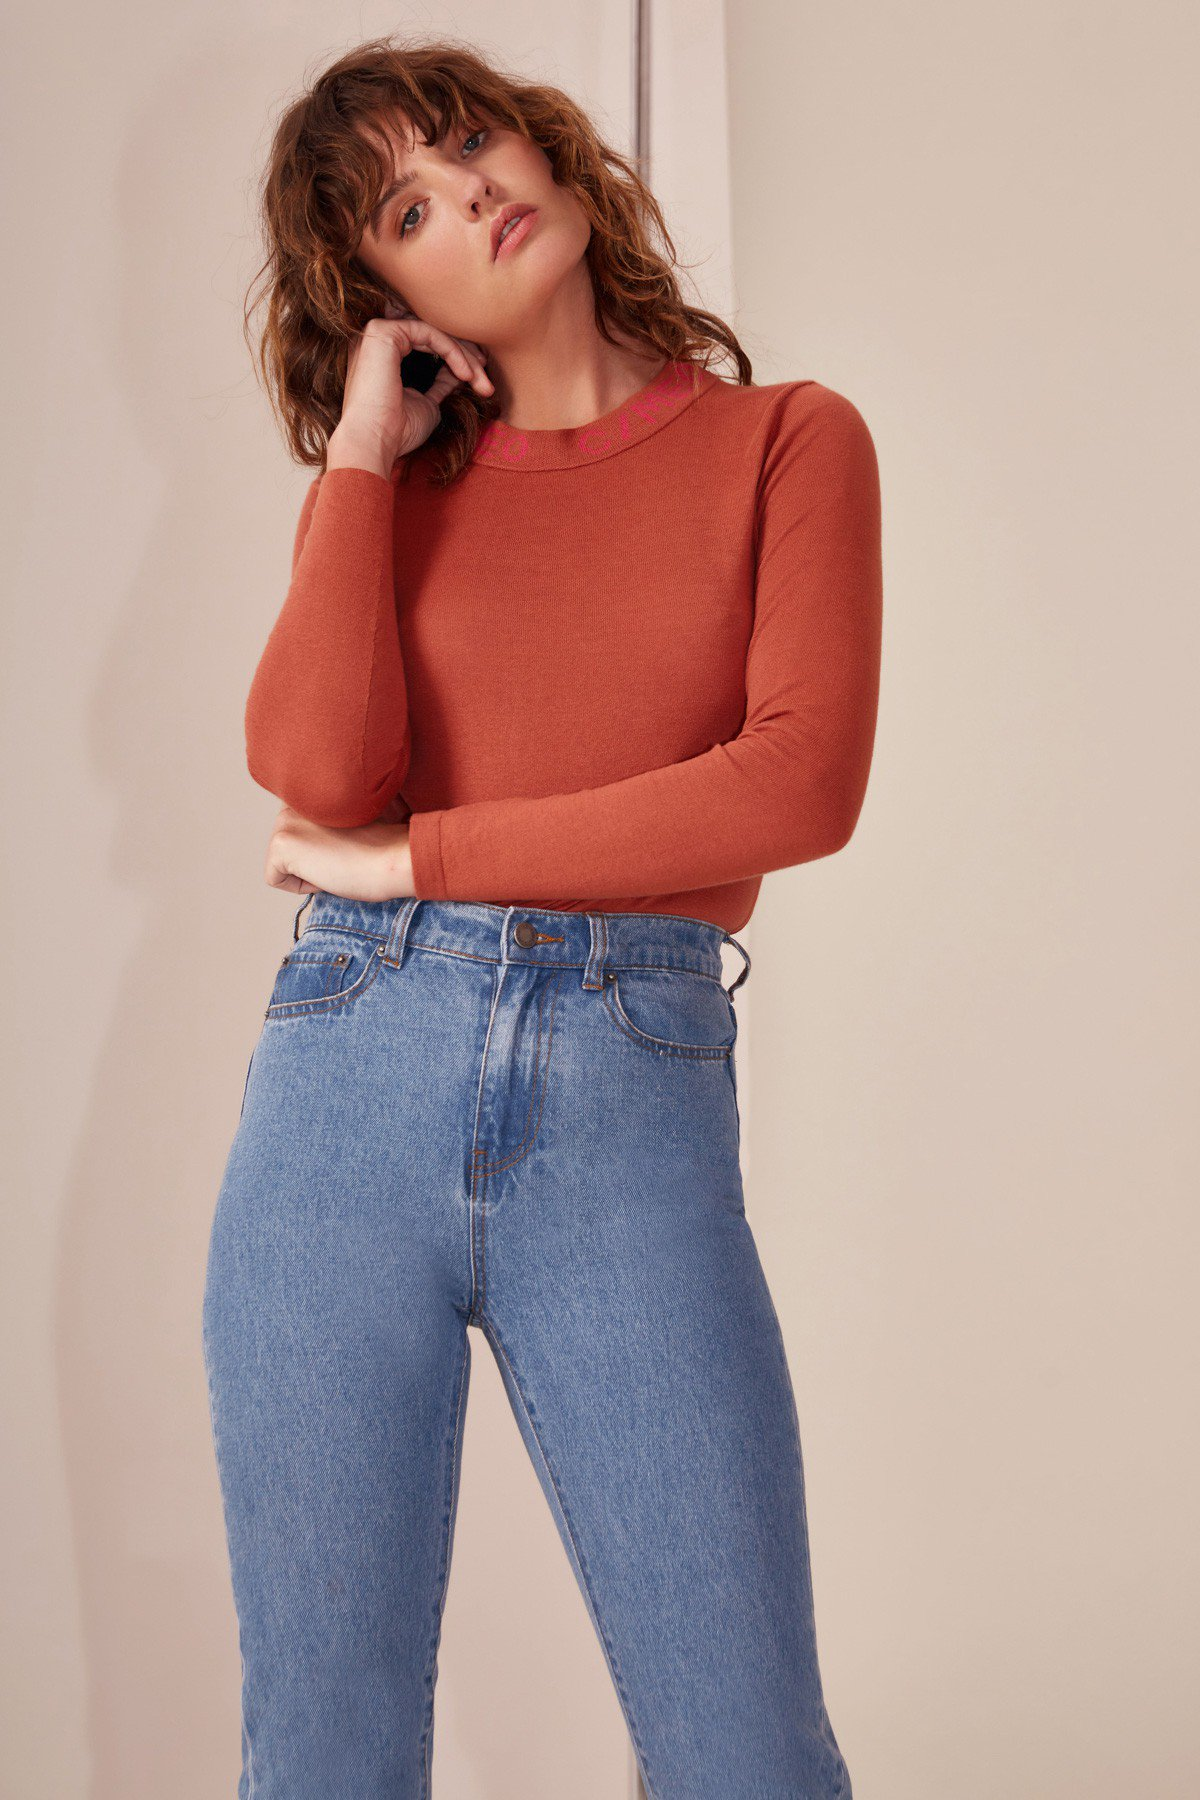 Shop C/MEO Collect Knit Top  +  Keep On Jean .